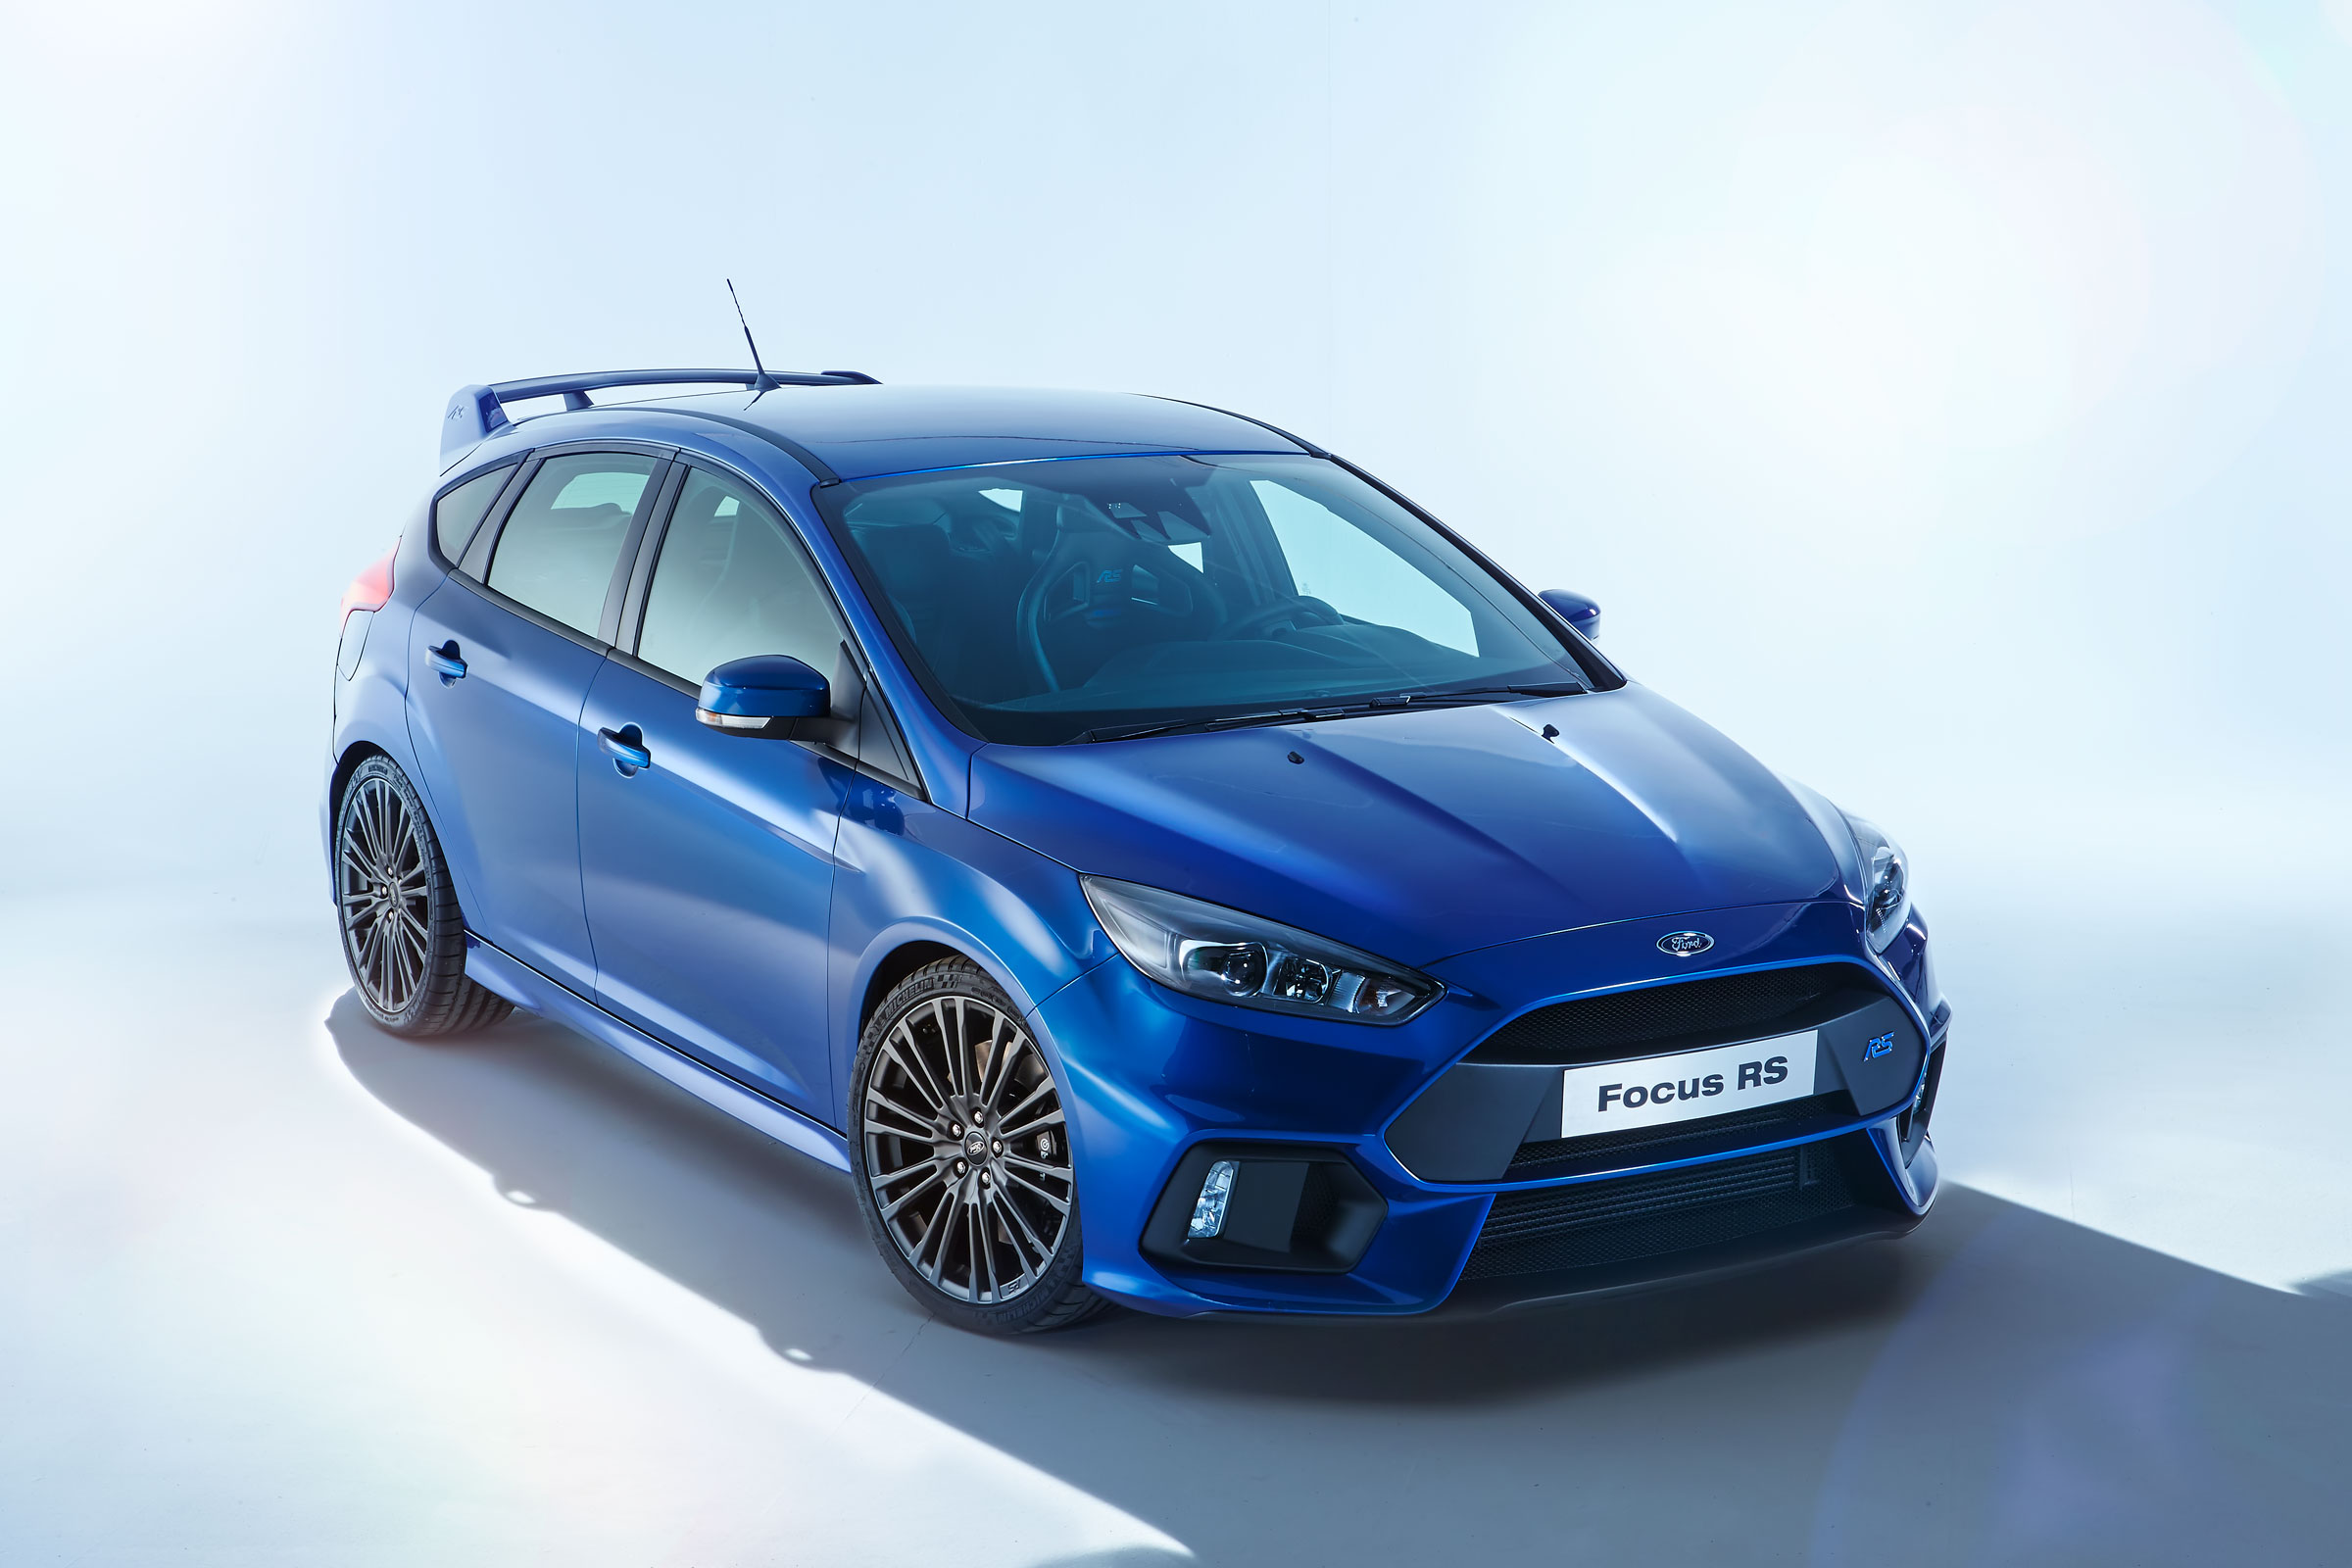 2016 ford focus rs debuts in cologne here are the official details